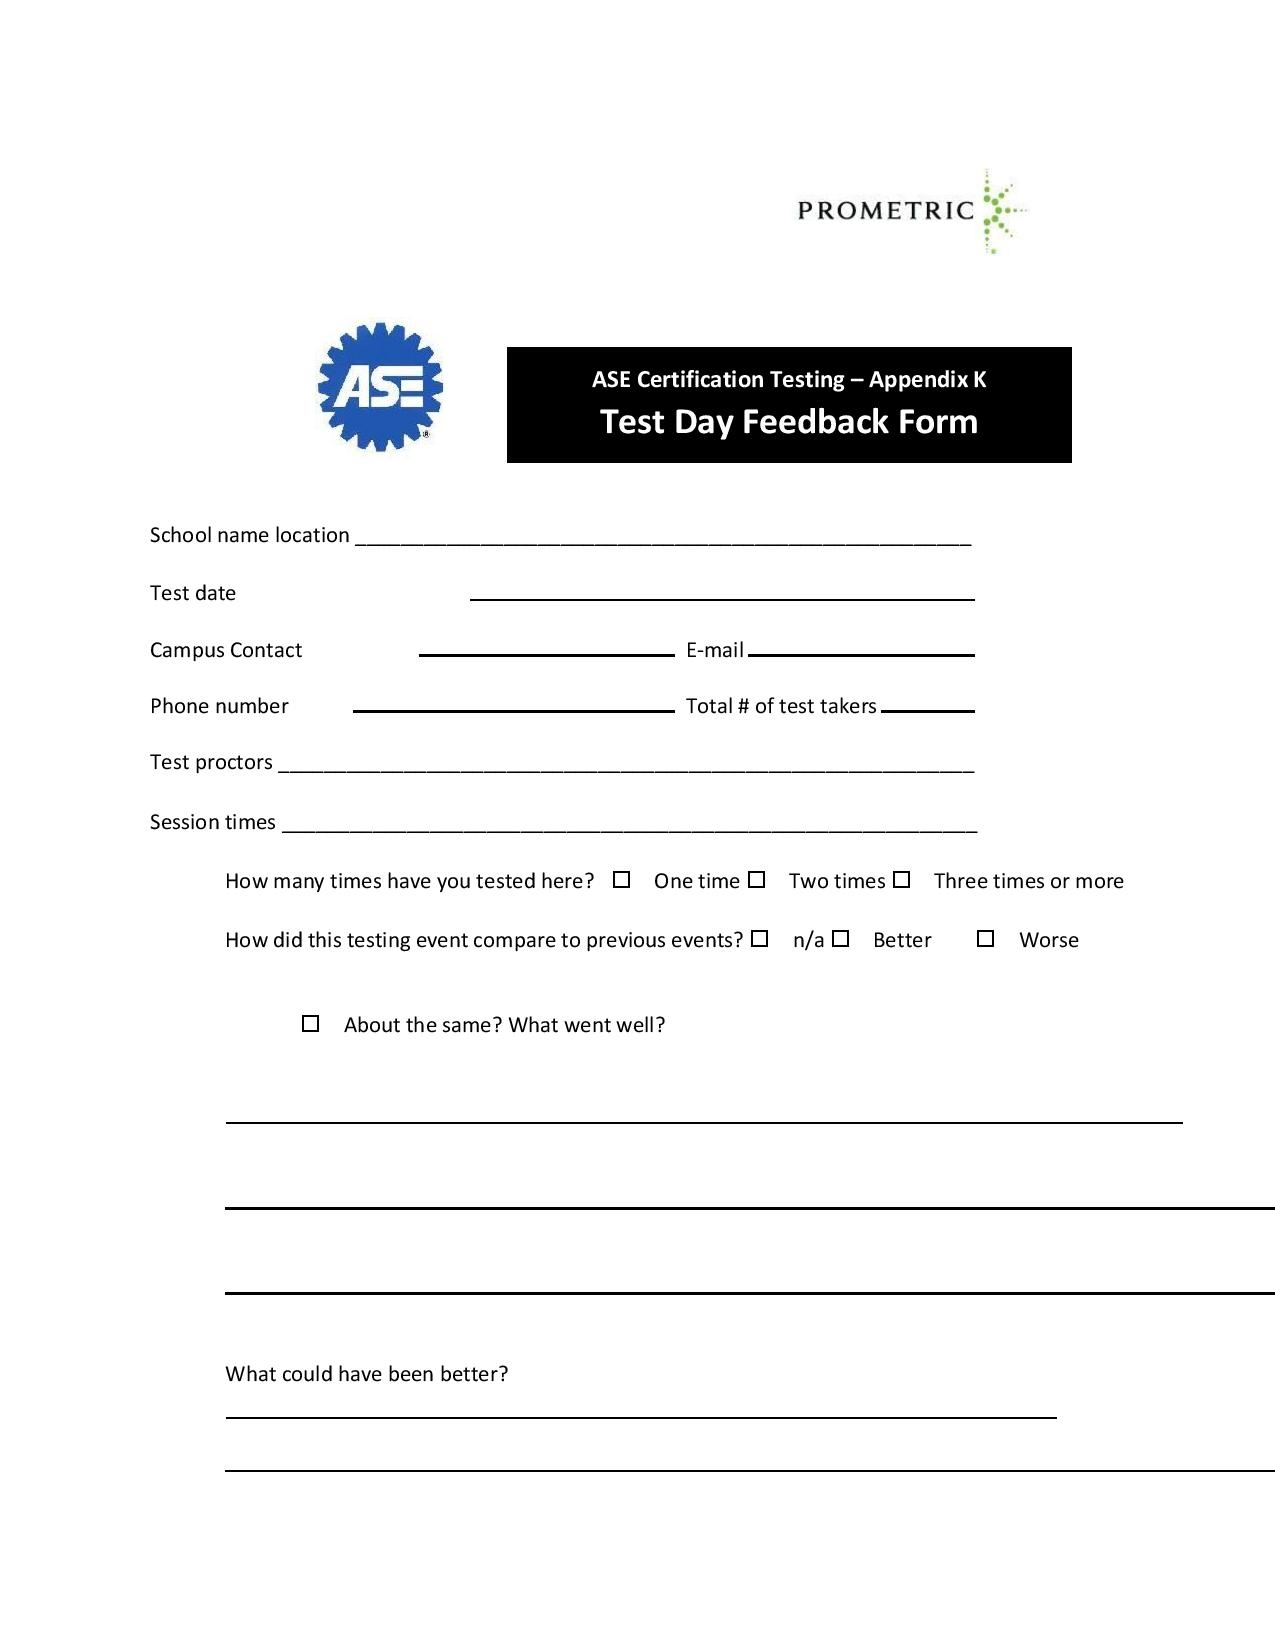 FREE 10+ Exam and Test Feedback Forms in PDF